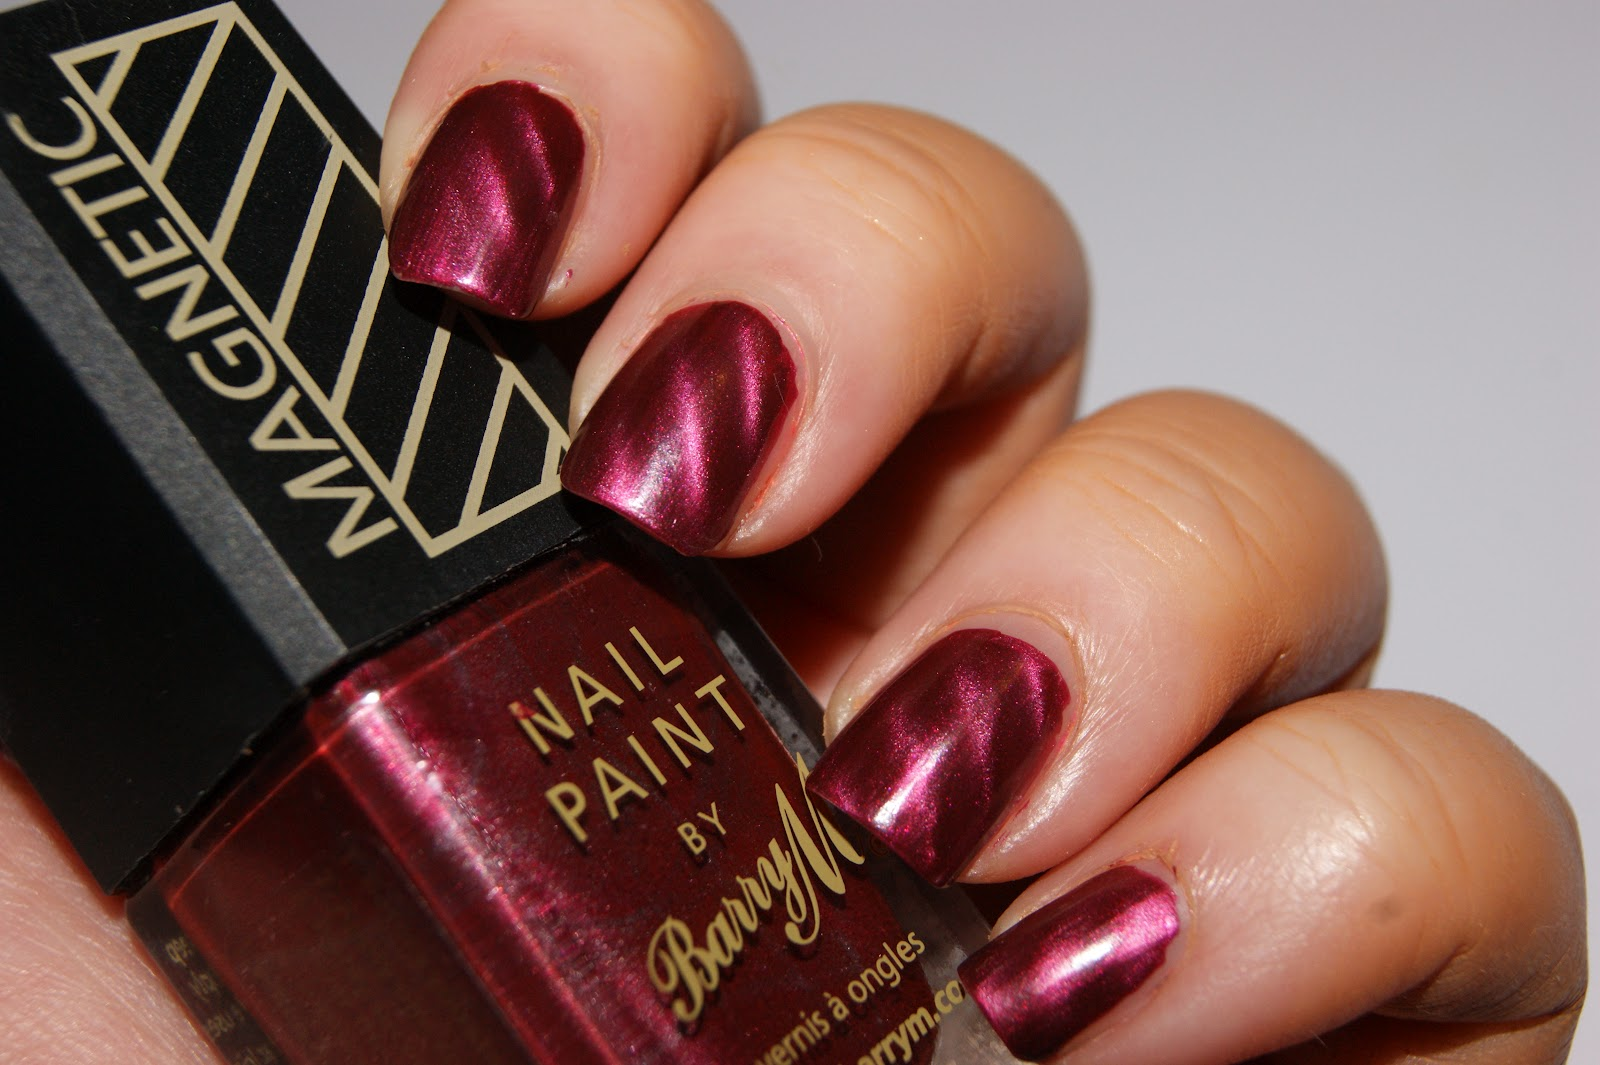 Barry M Magnetic Burgundy Nail Polish - Review | The Sunday Girl